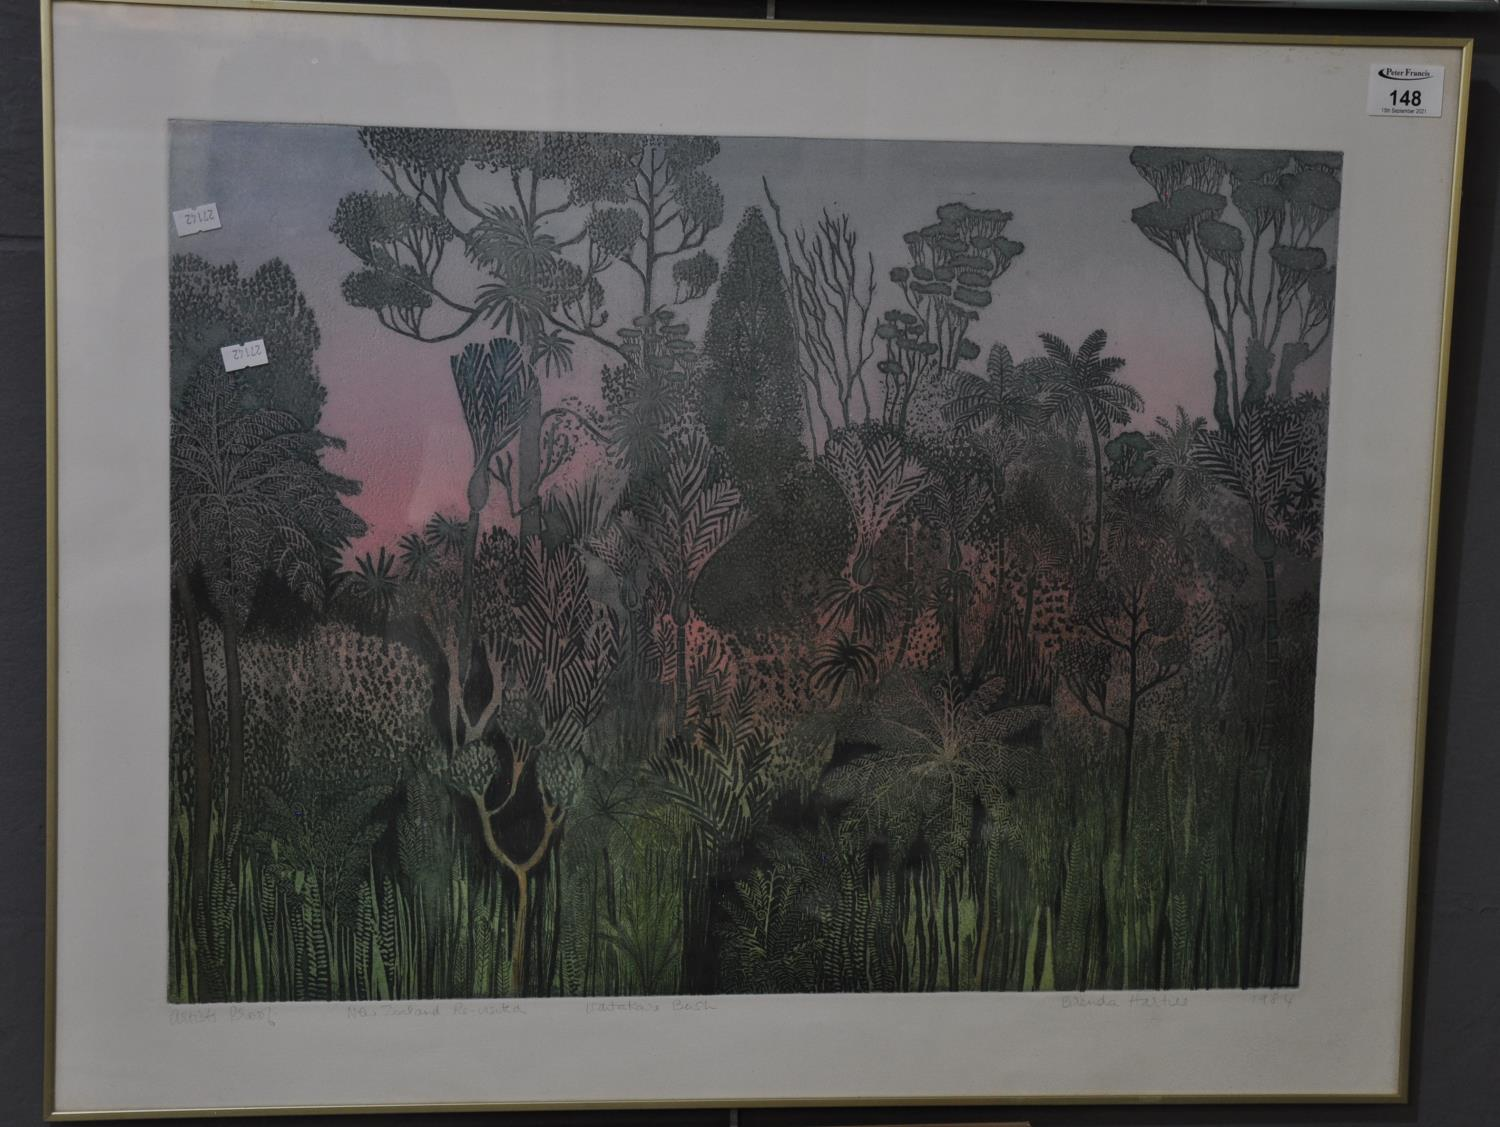 Brenda Hartill, 'New Zealand Revisited, Waitakere bush', artist's proof, coloured etching, signed in